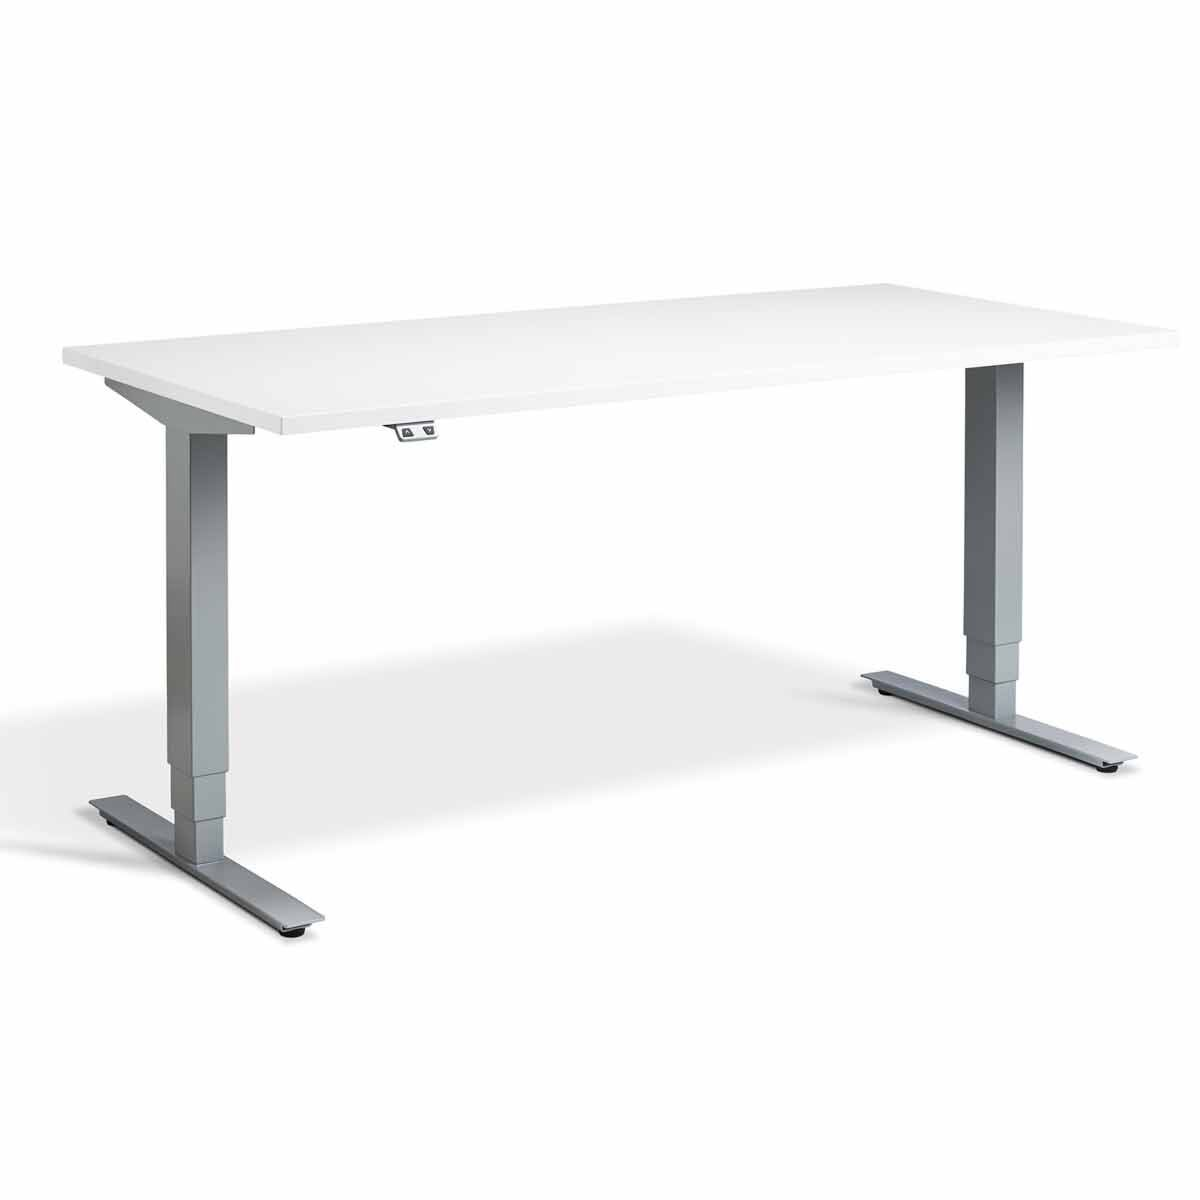 Lavoro Advance Dual Motor Height Adjustment Desk Silver Frame 1200 x 800